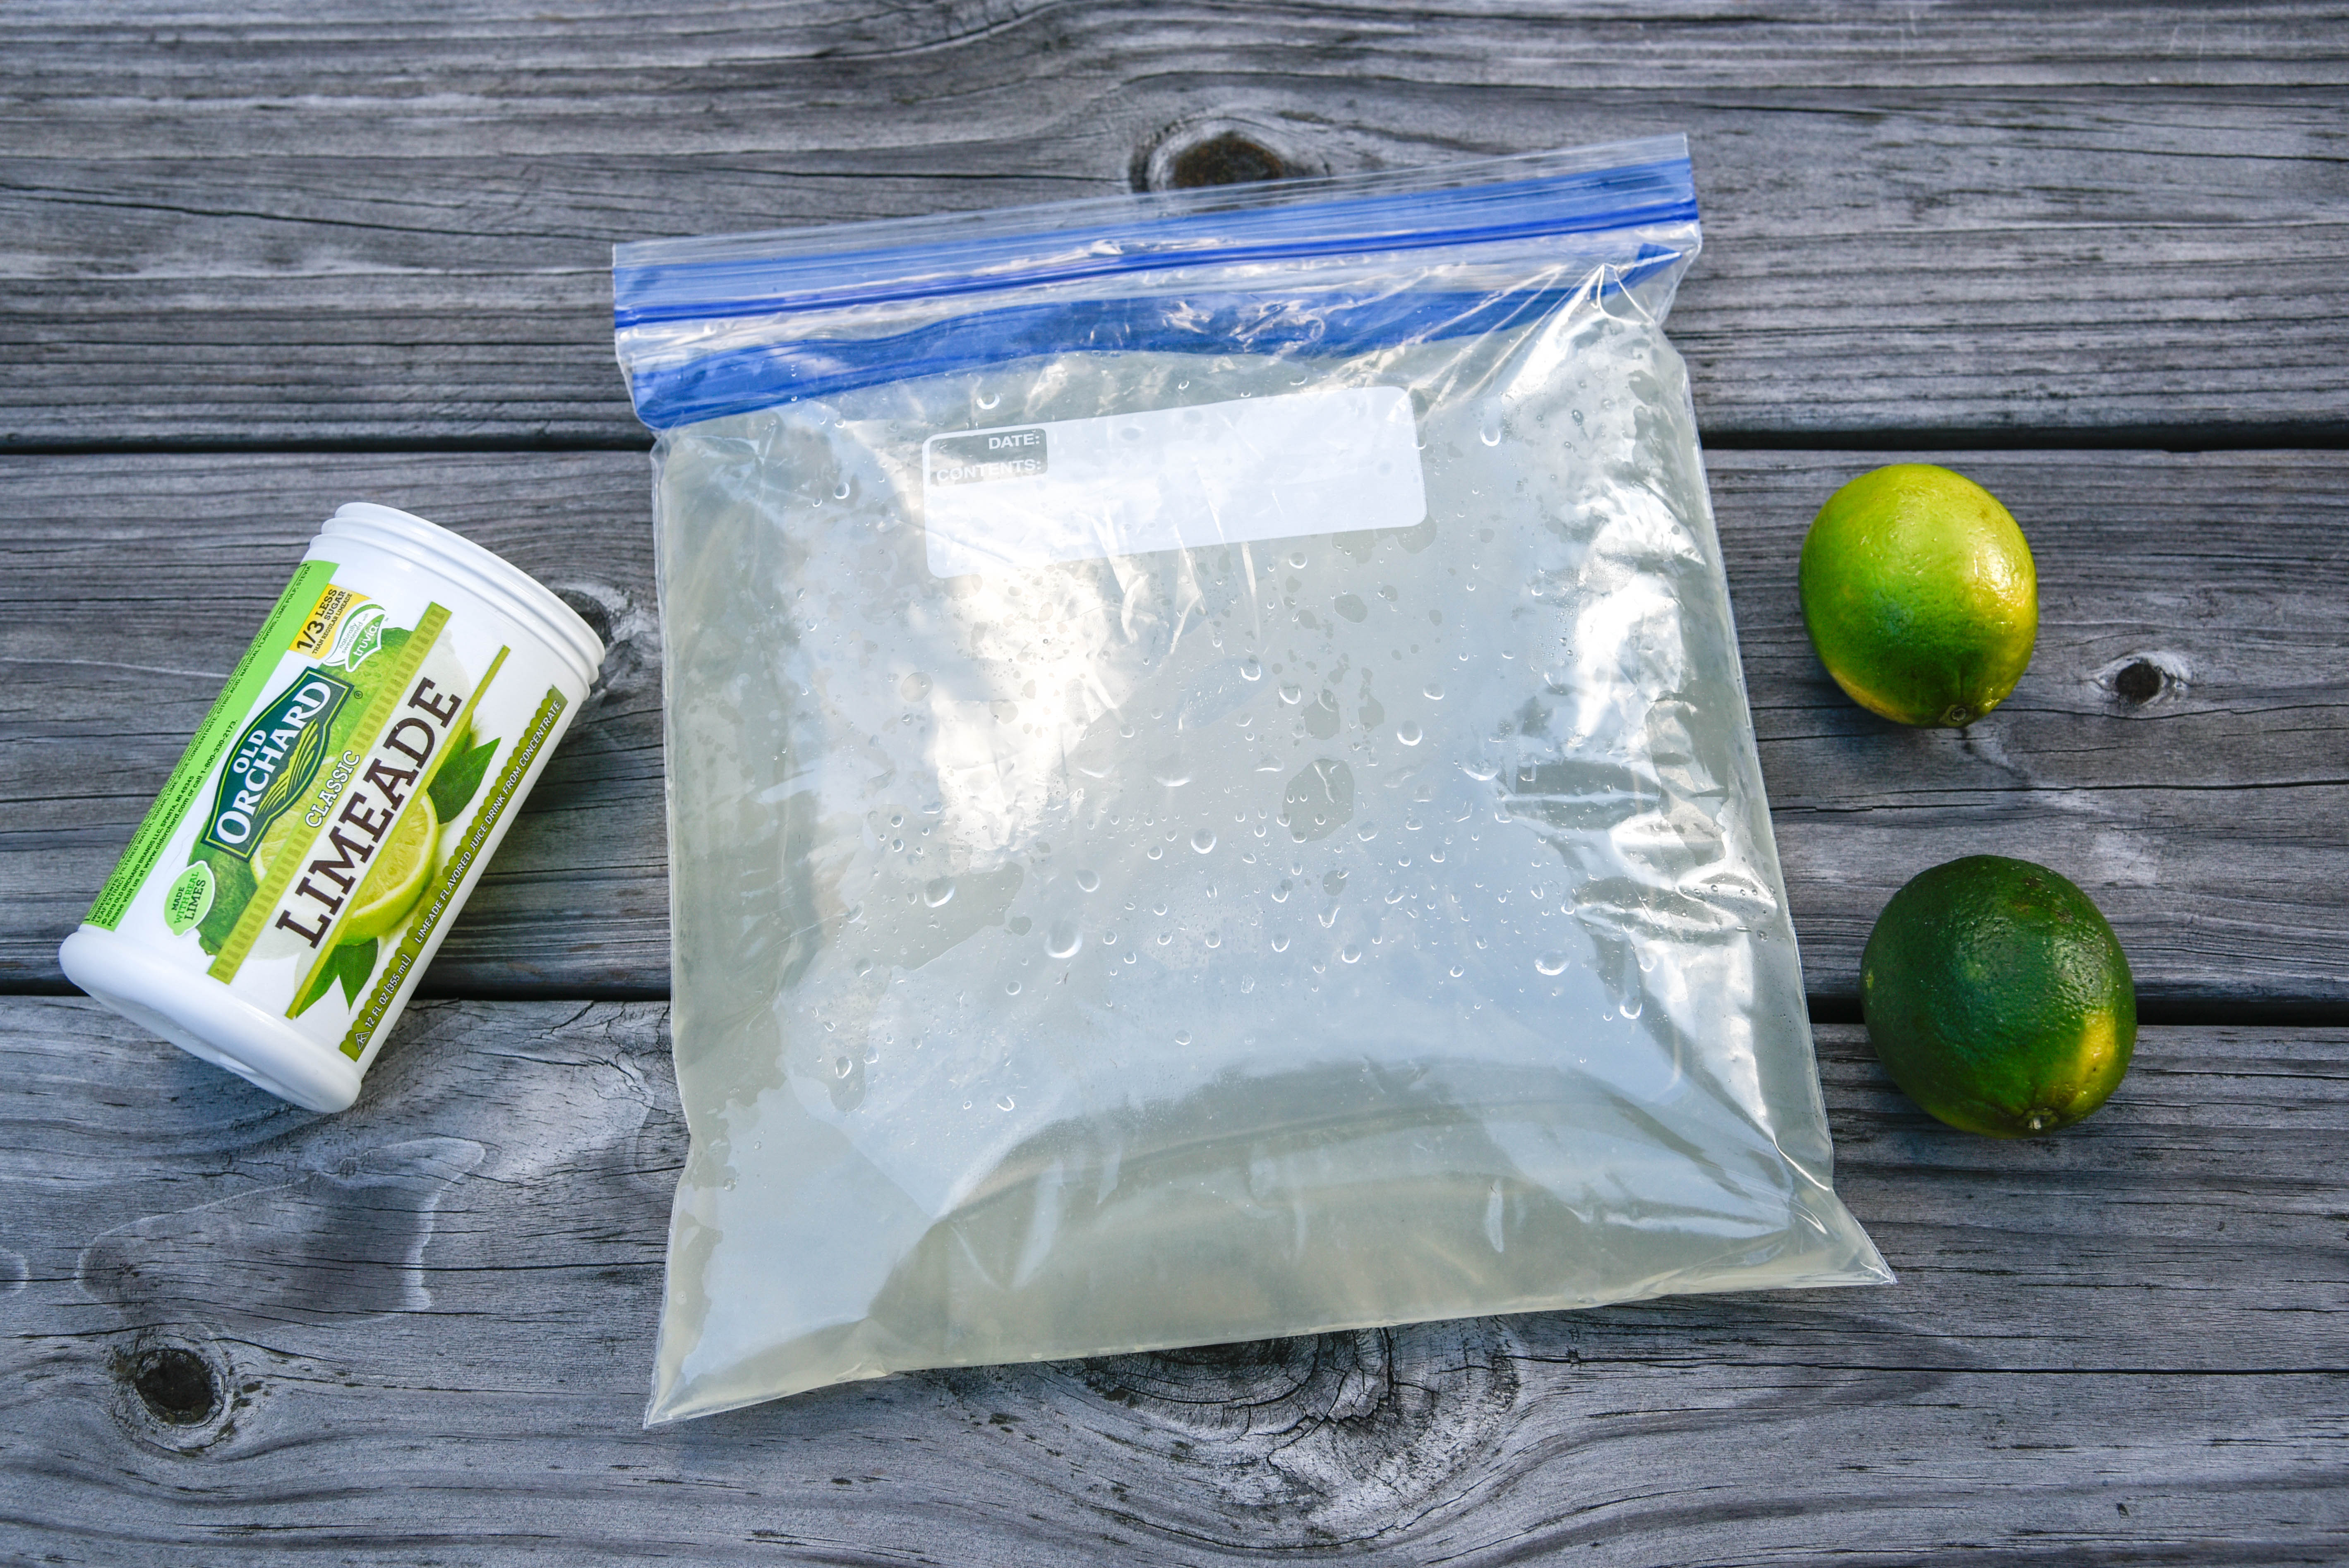 Mixing bag with limeade and limes